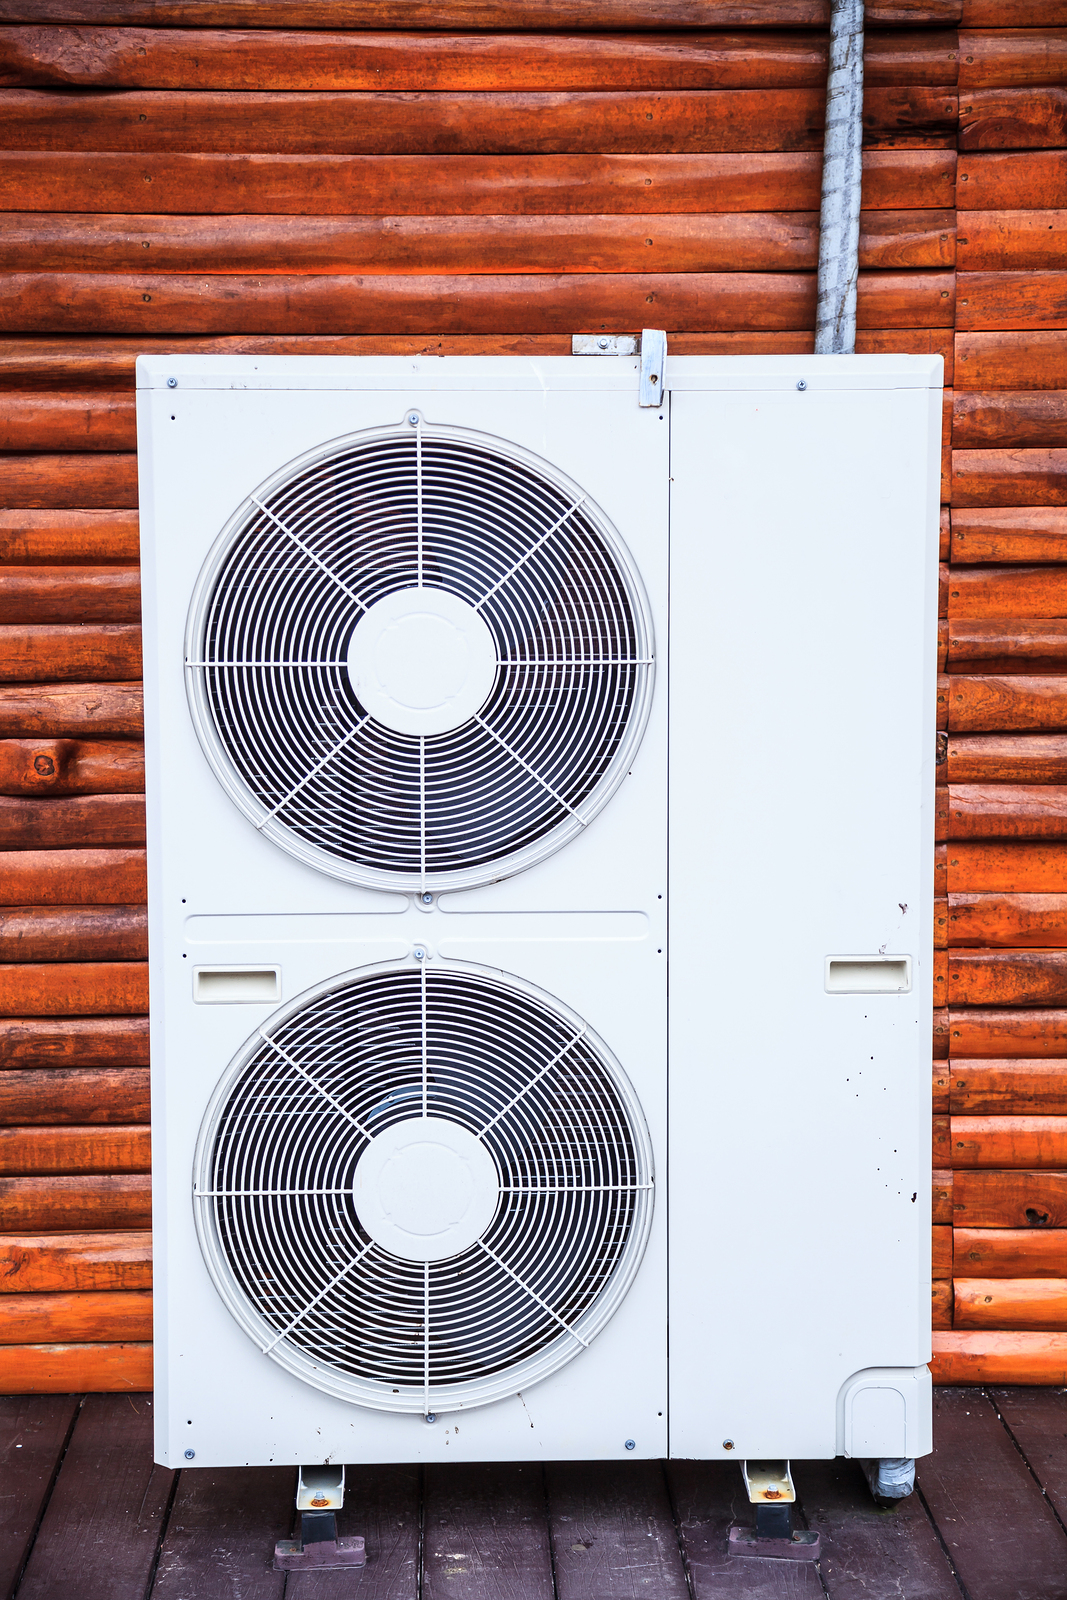 Air conditioner units use fan to distribute conditioned air to improve thermal comfort and indoor air quality. Air conditioning is process of removing heat and moisture from inside. Electrical Device.